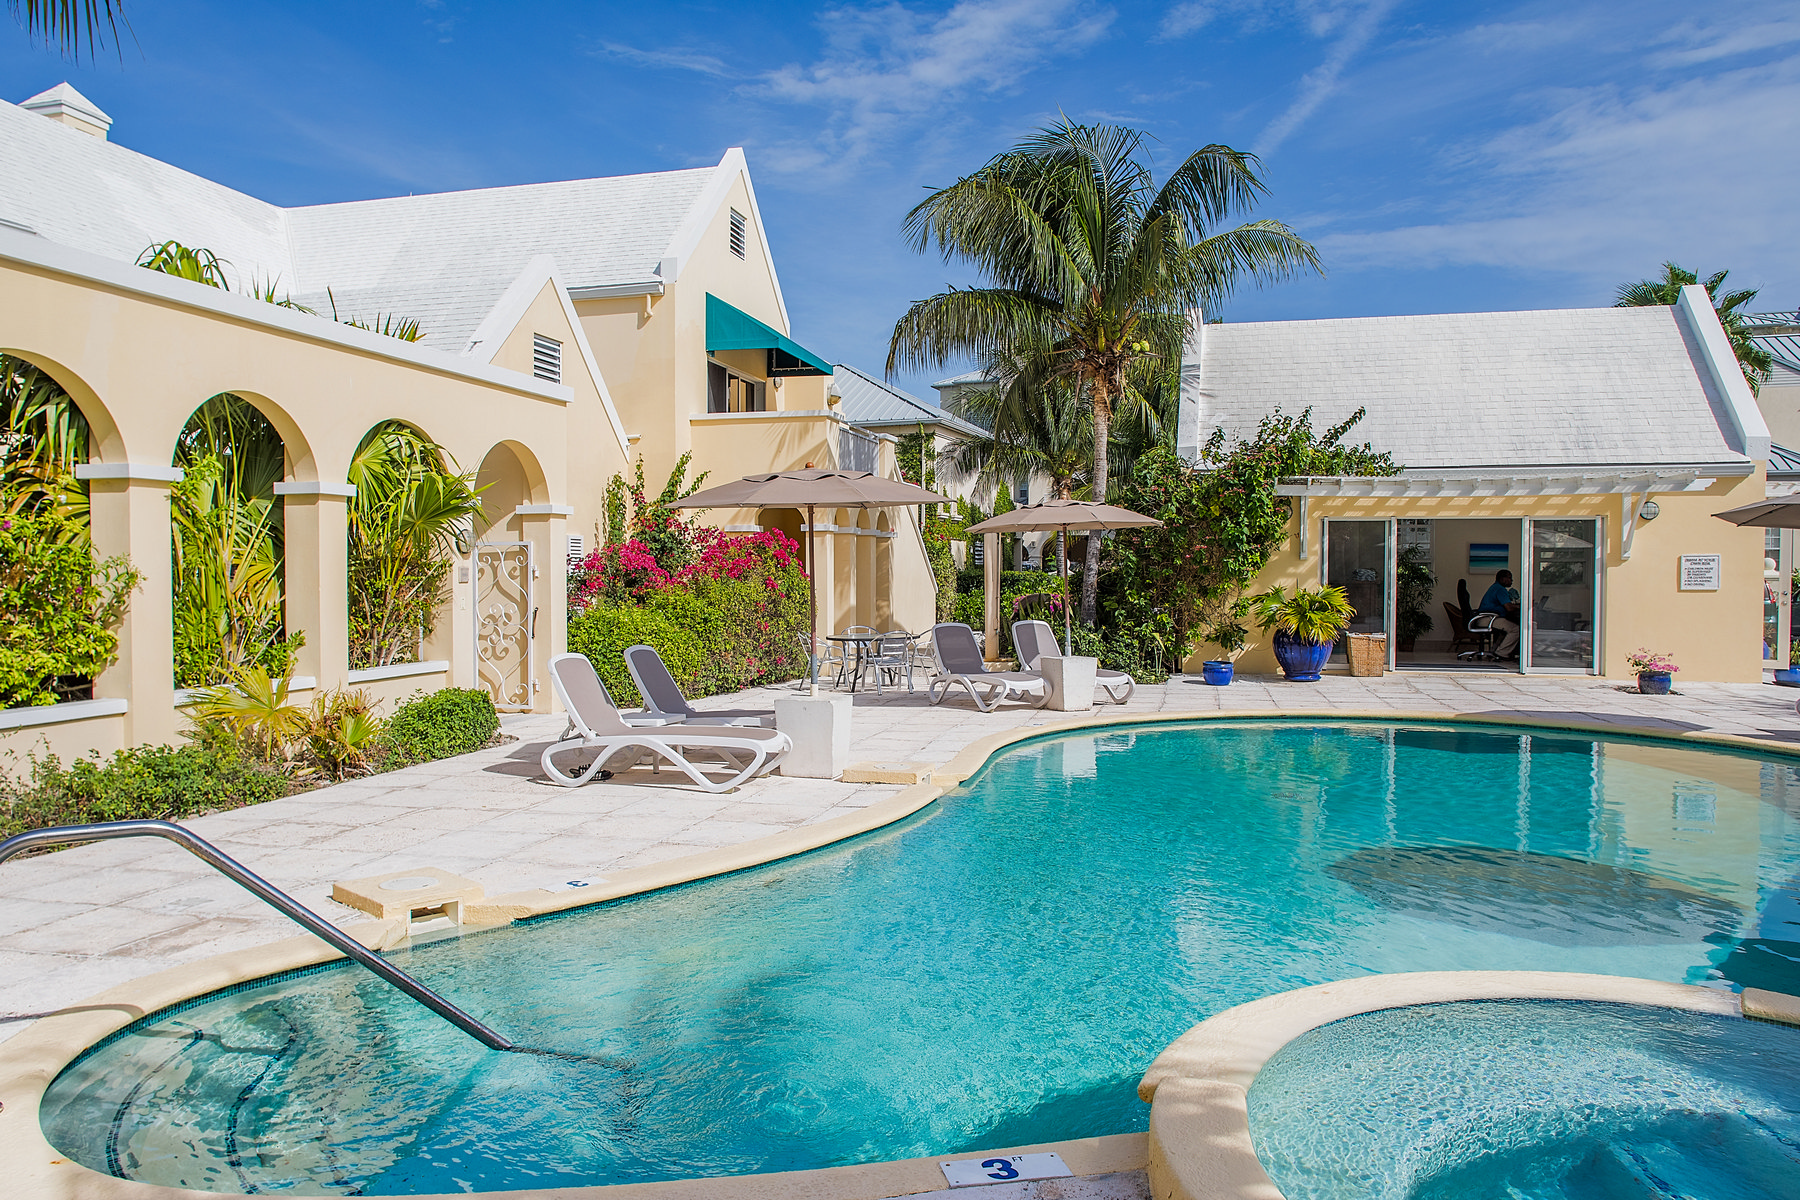 Other Residential for Sale at Reef Residences Grace Bay, Providenciales Turks And Caicos Islands